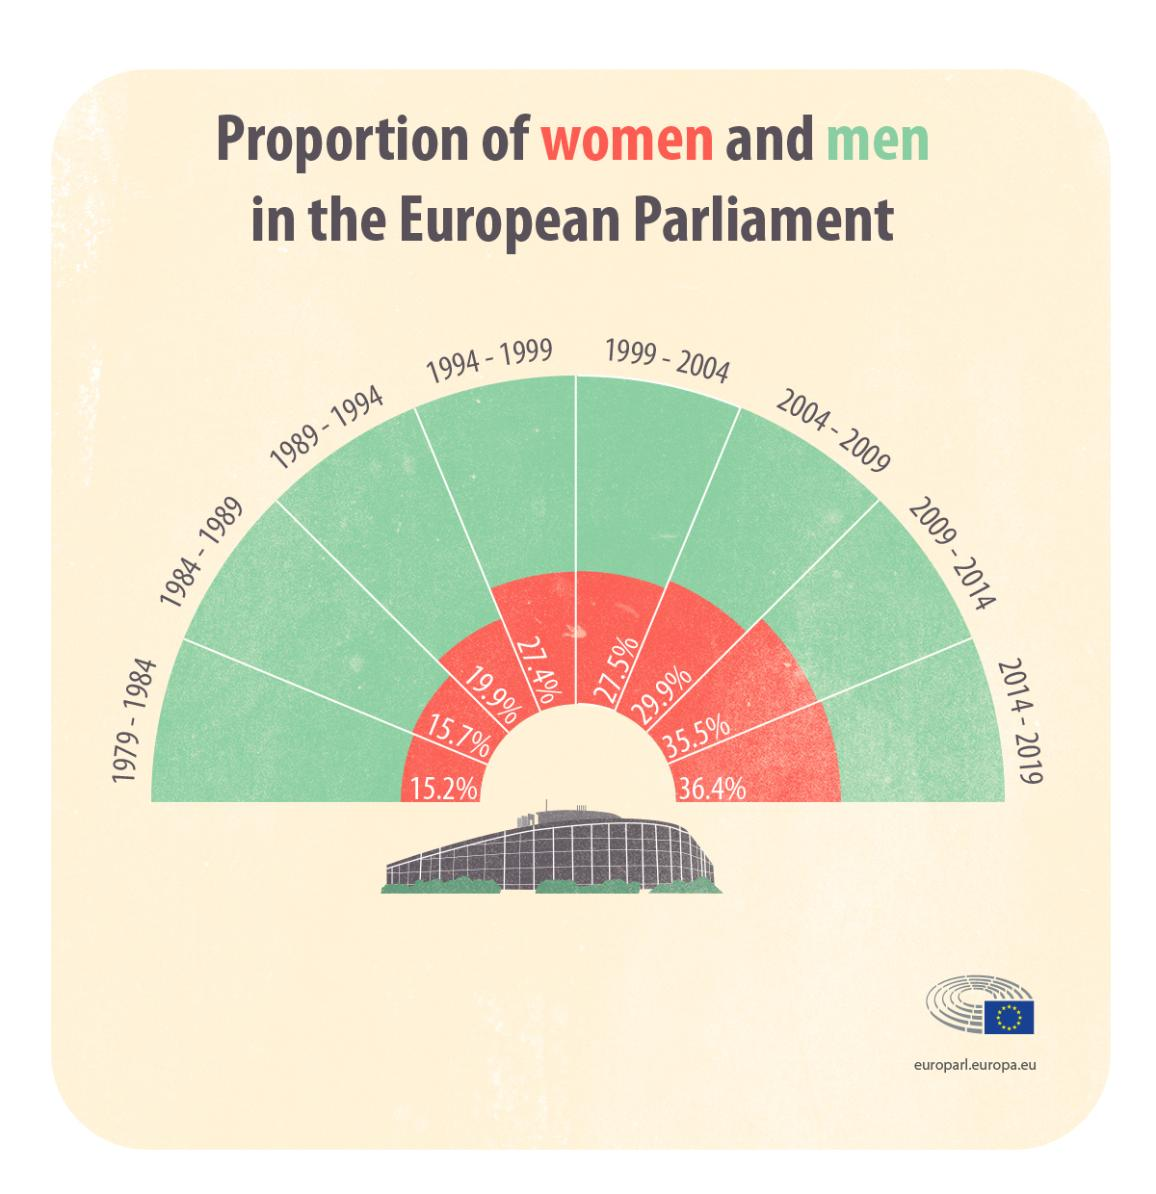 Infographic on proportion of women and men in the European Parliament